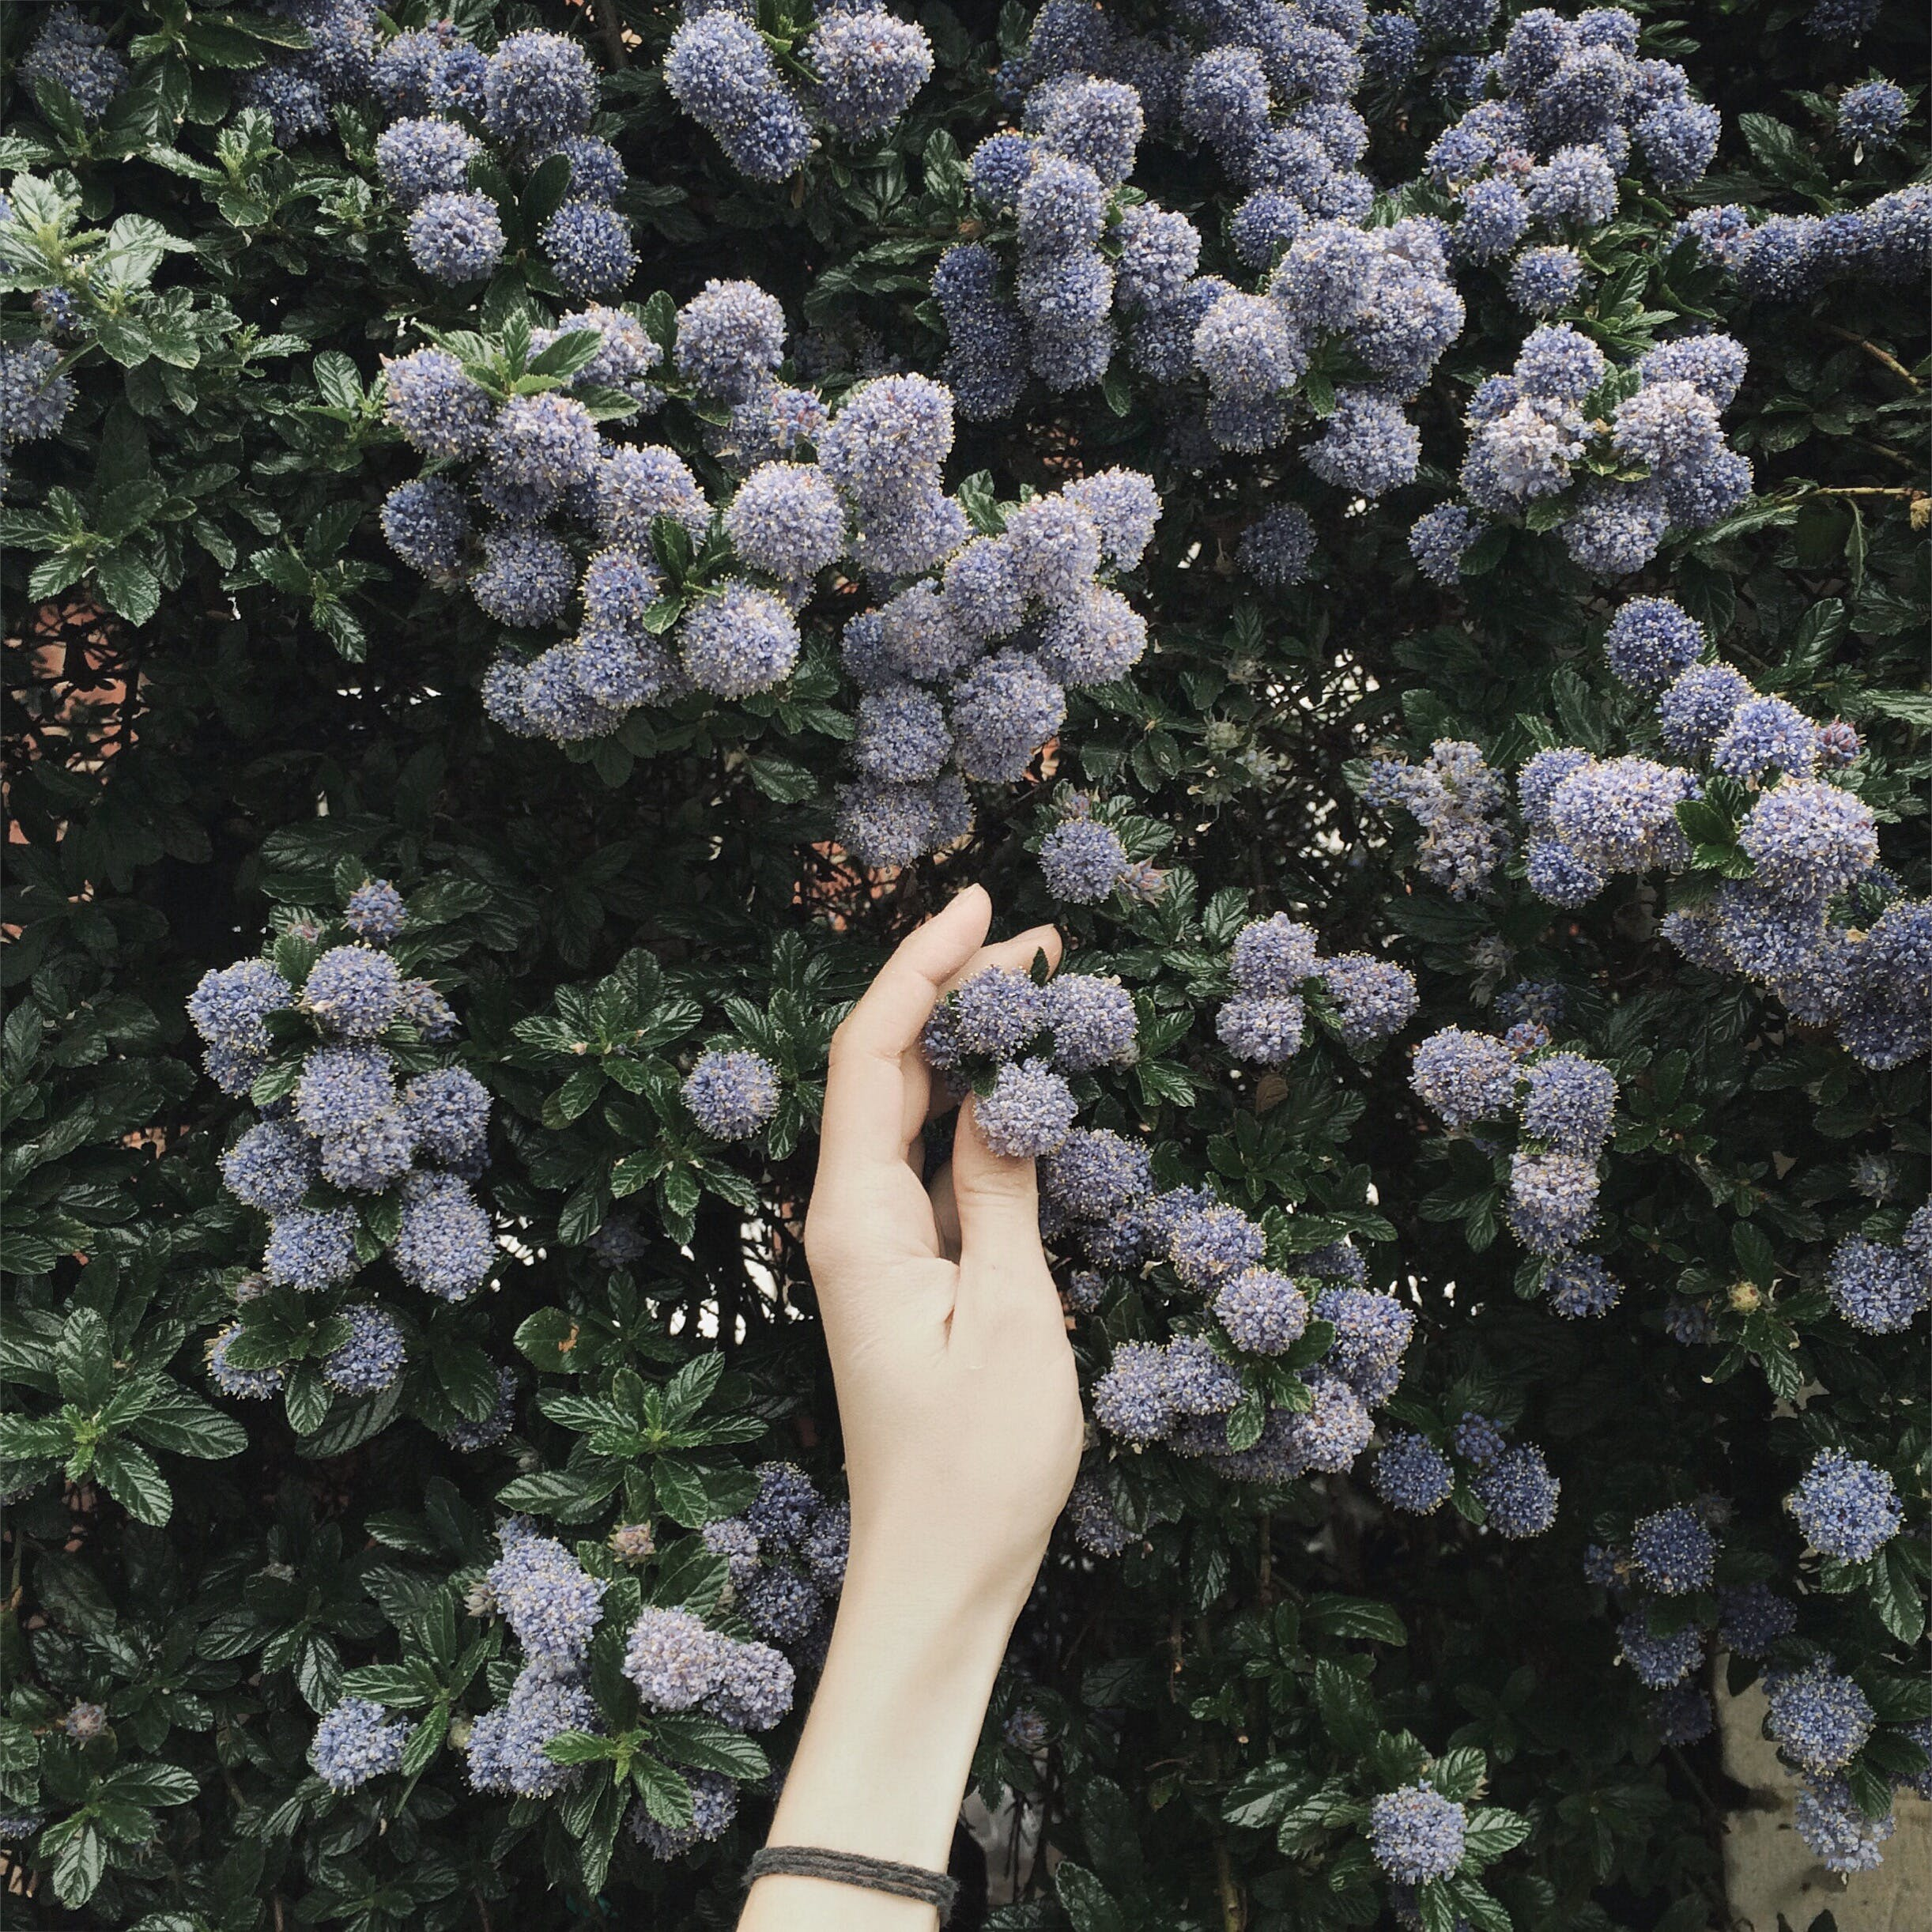 Person Touching Blue Flower